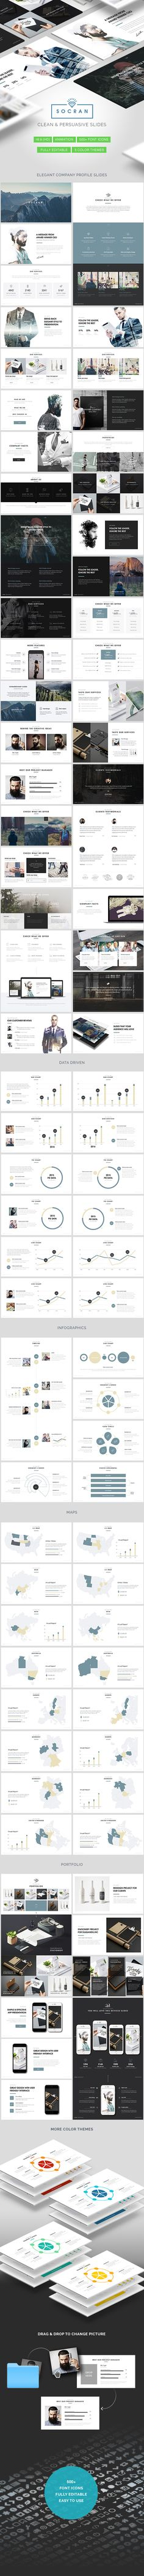 SOCRAN - Clean & Modern Keynote Presentation Template #design #slides Double exposure inspiration